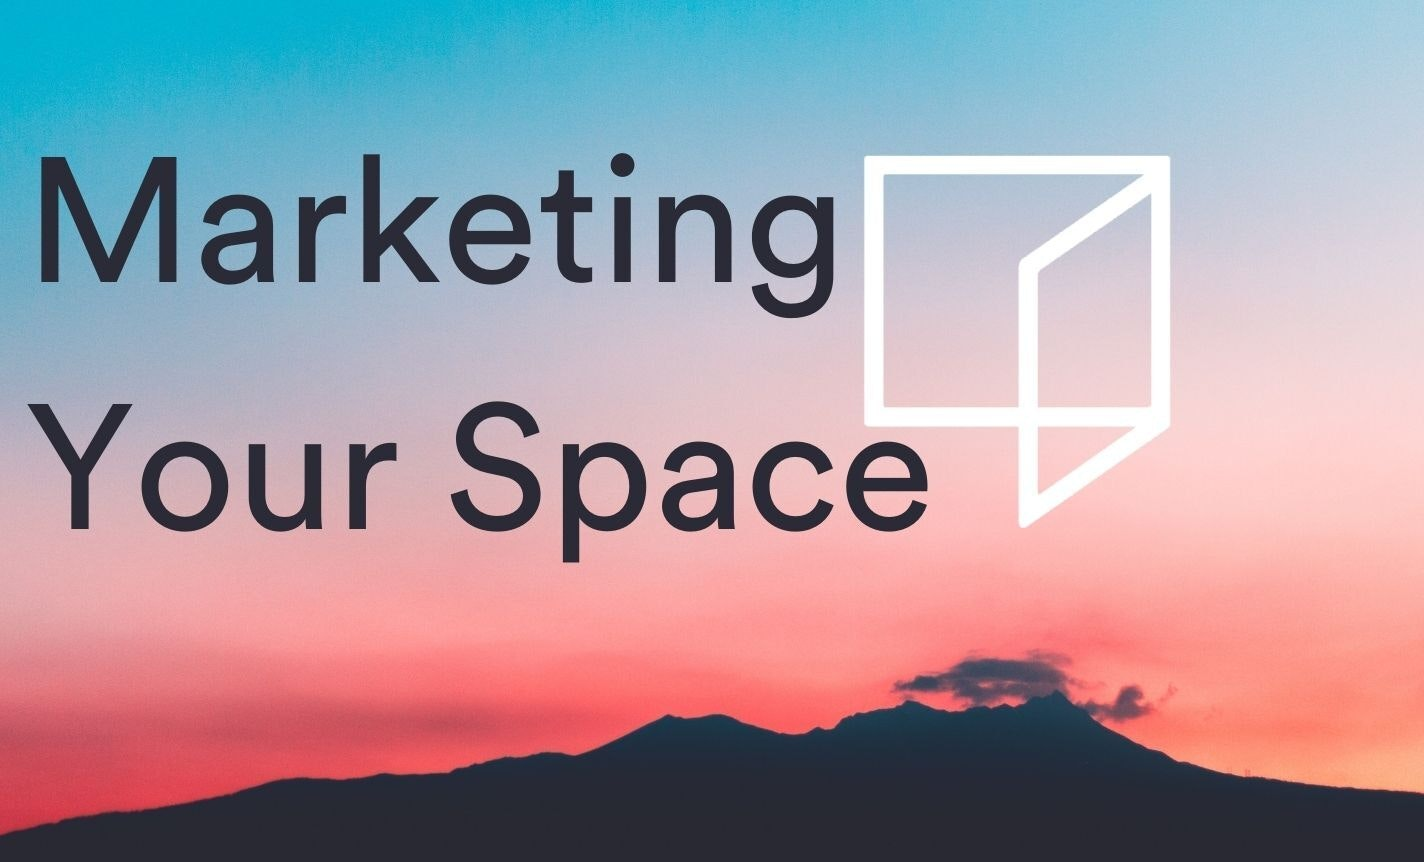 Marketing Your Space